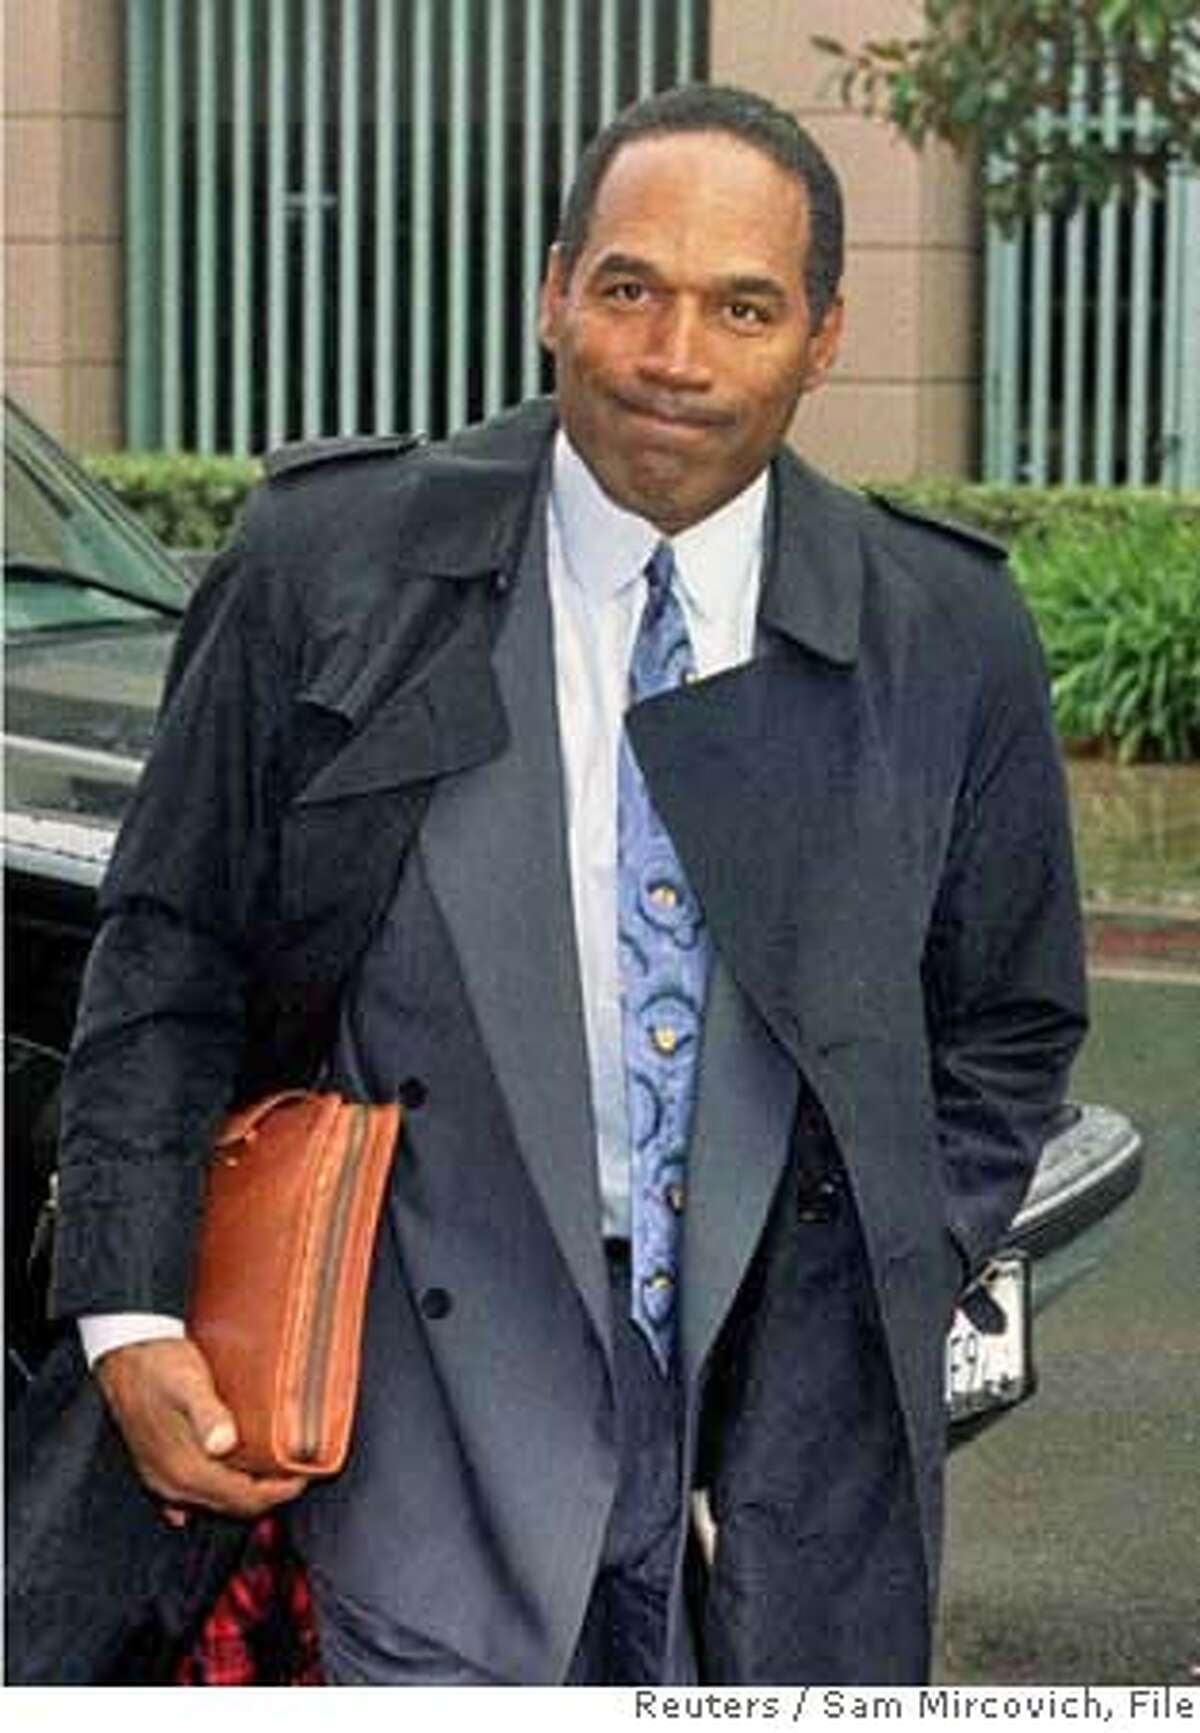 O.J. Simpson arrives at family court for a child custody case in Santa Ana, California in this November 21, 1996 file photo. More than a decade after he was acquitted of charges he murdered his ex-wife Nicole Brown Simpson and her friend Ron Goldman, O.J. will describe in a televised interview how he would have committed the crime if he was the one responsible in a special to air on the Fox Network November 27 and 29, 2006. REUTERS/Sam Mircovich/Files (UNITED STATES) RC/ELD 0